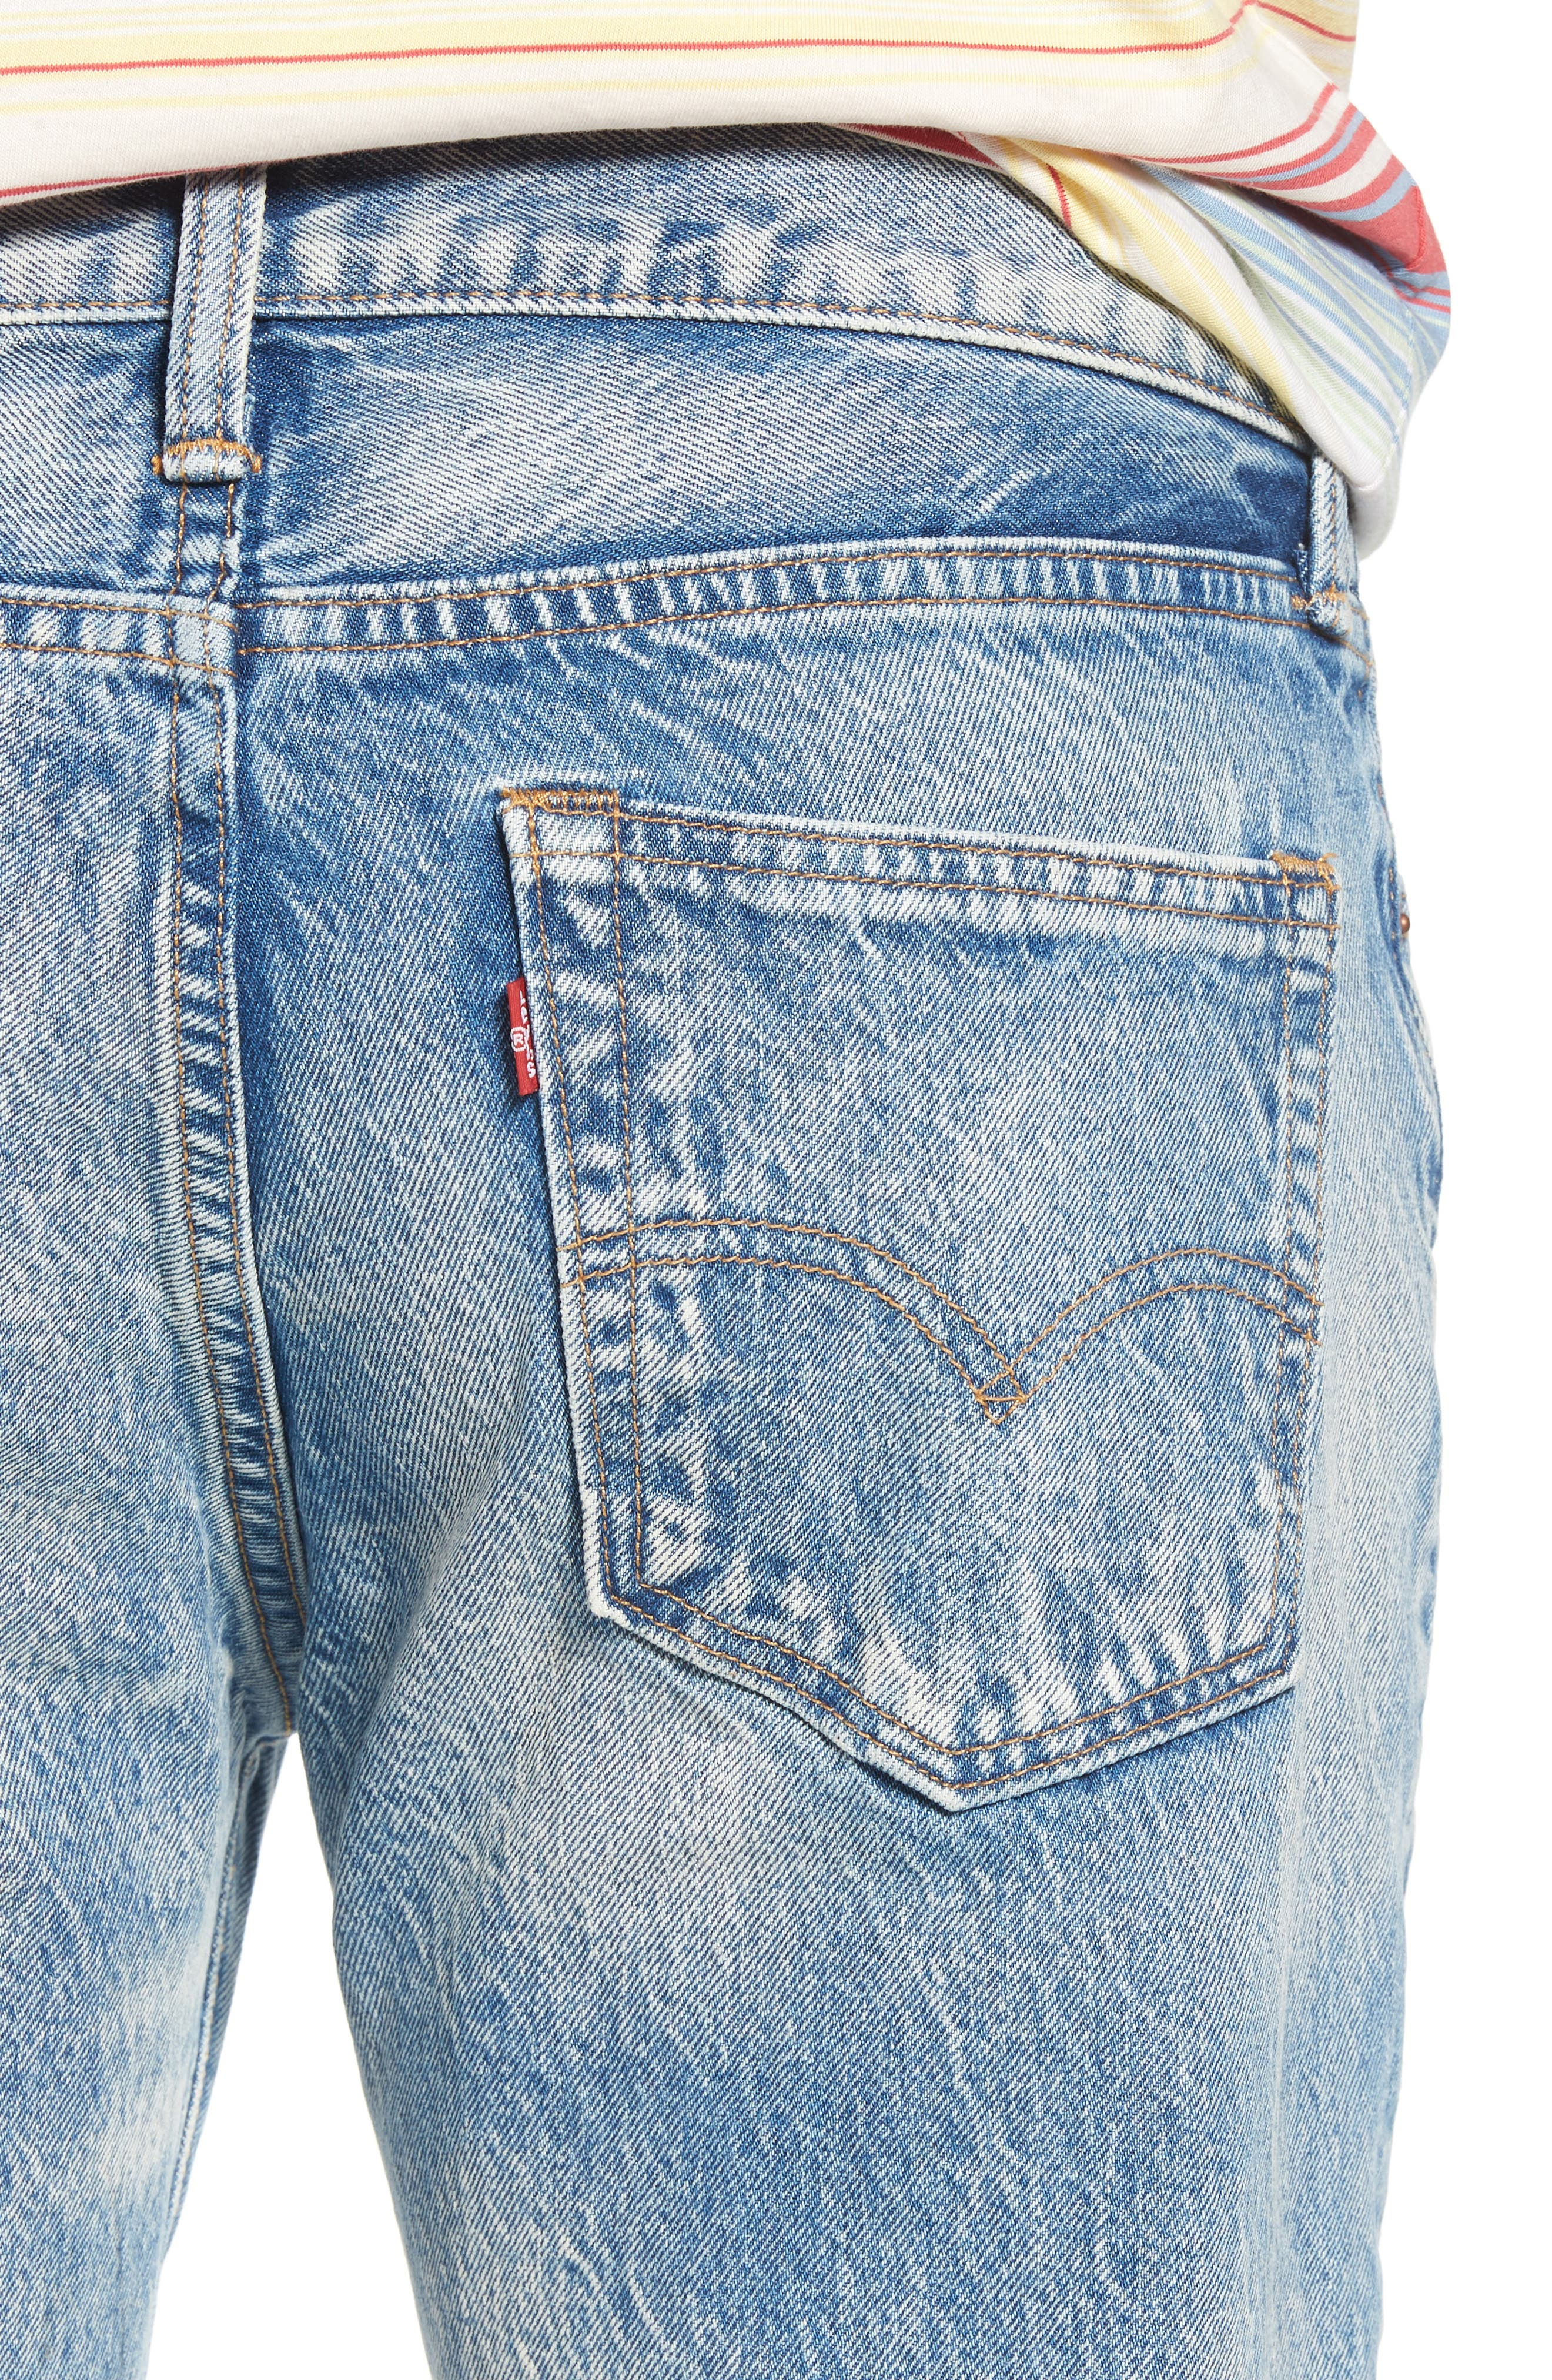 510<sup>™</sup> Skinny Jeans,                             Alternate thumbnail 4, color,                             421